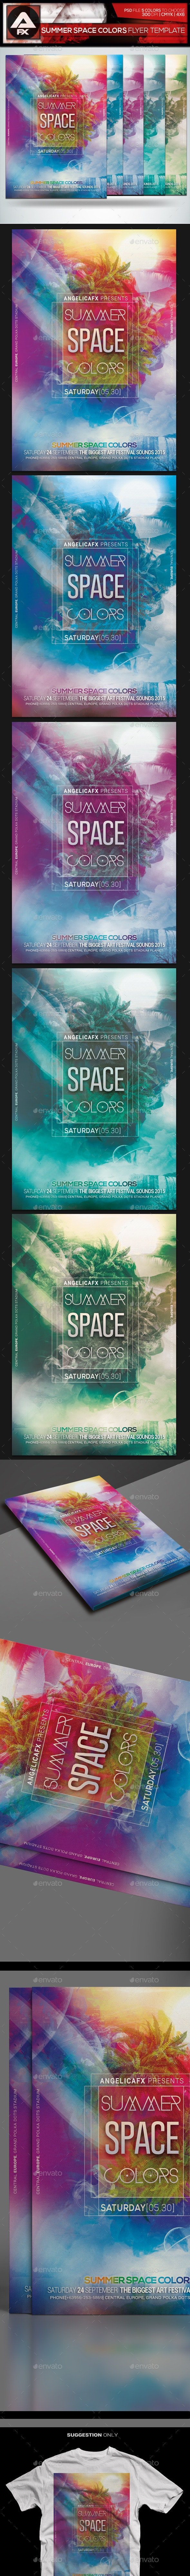 Summer Space Colors Flyer Template - Flyers Print Templates